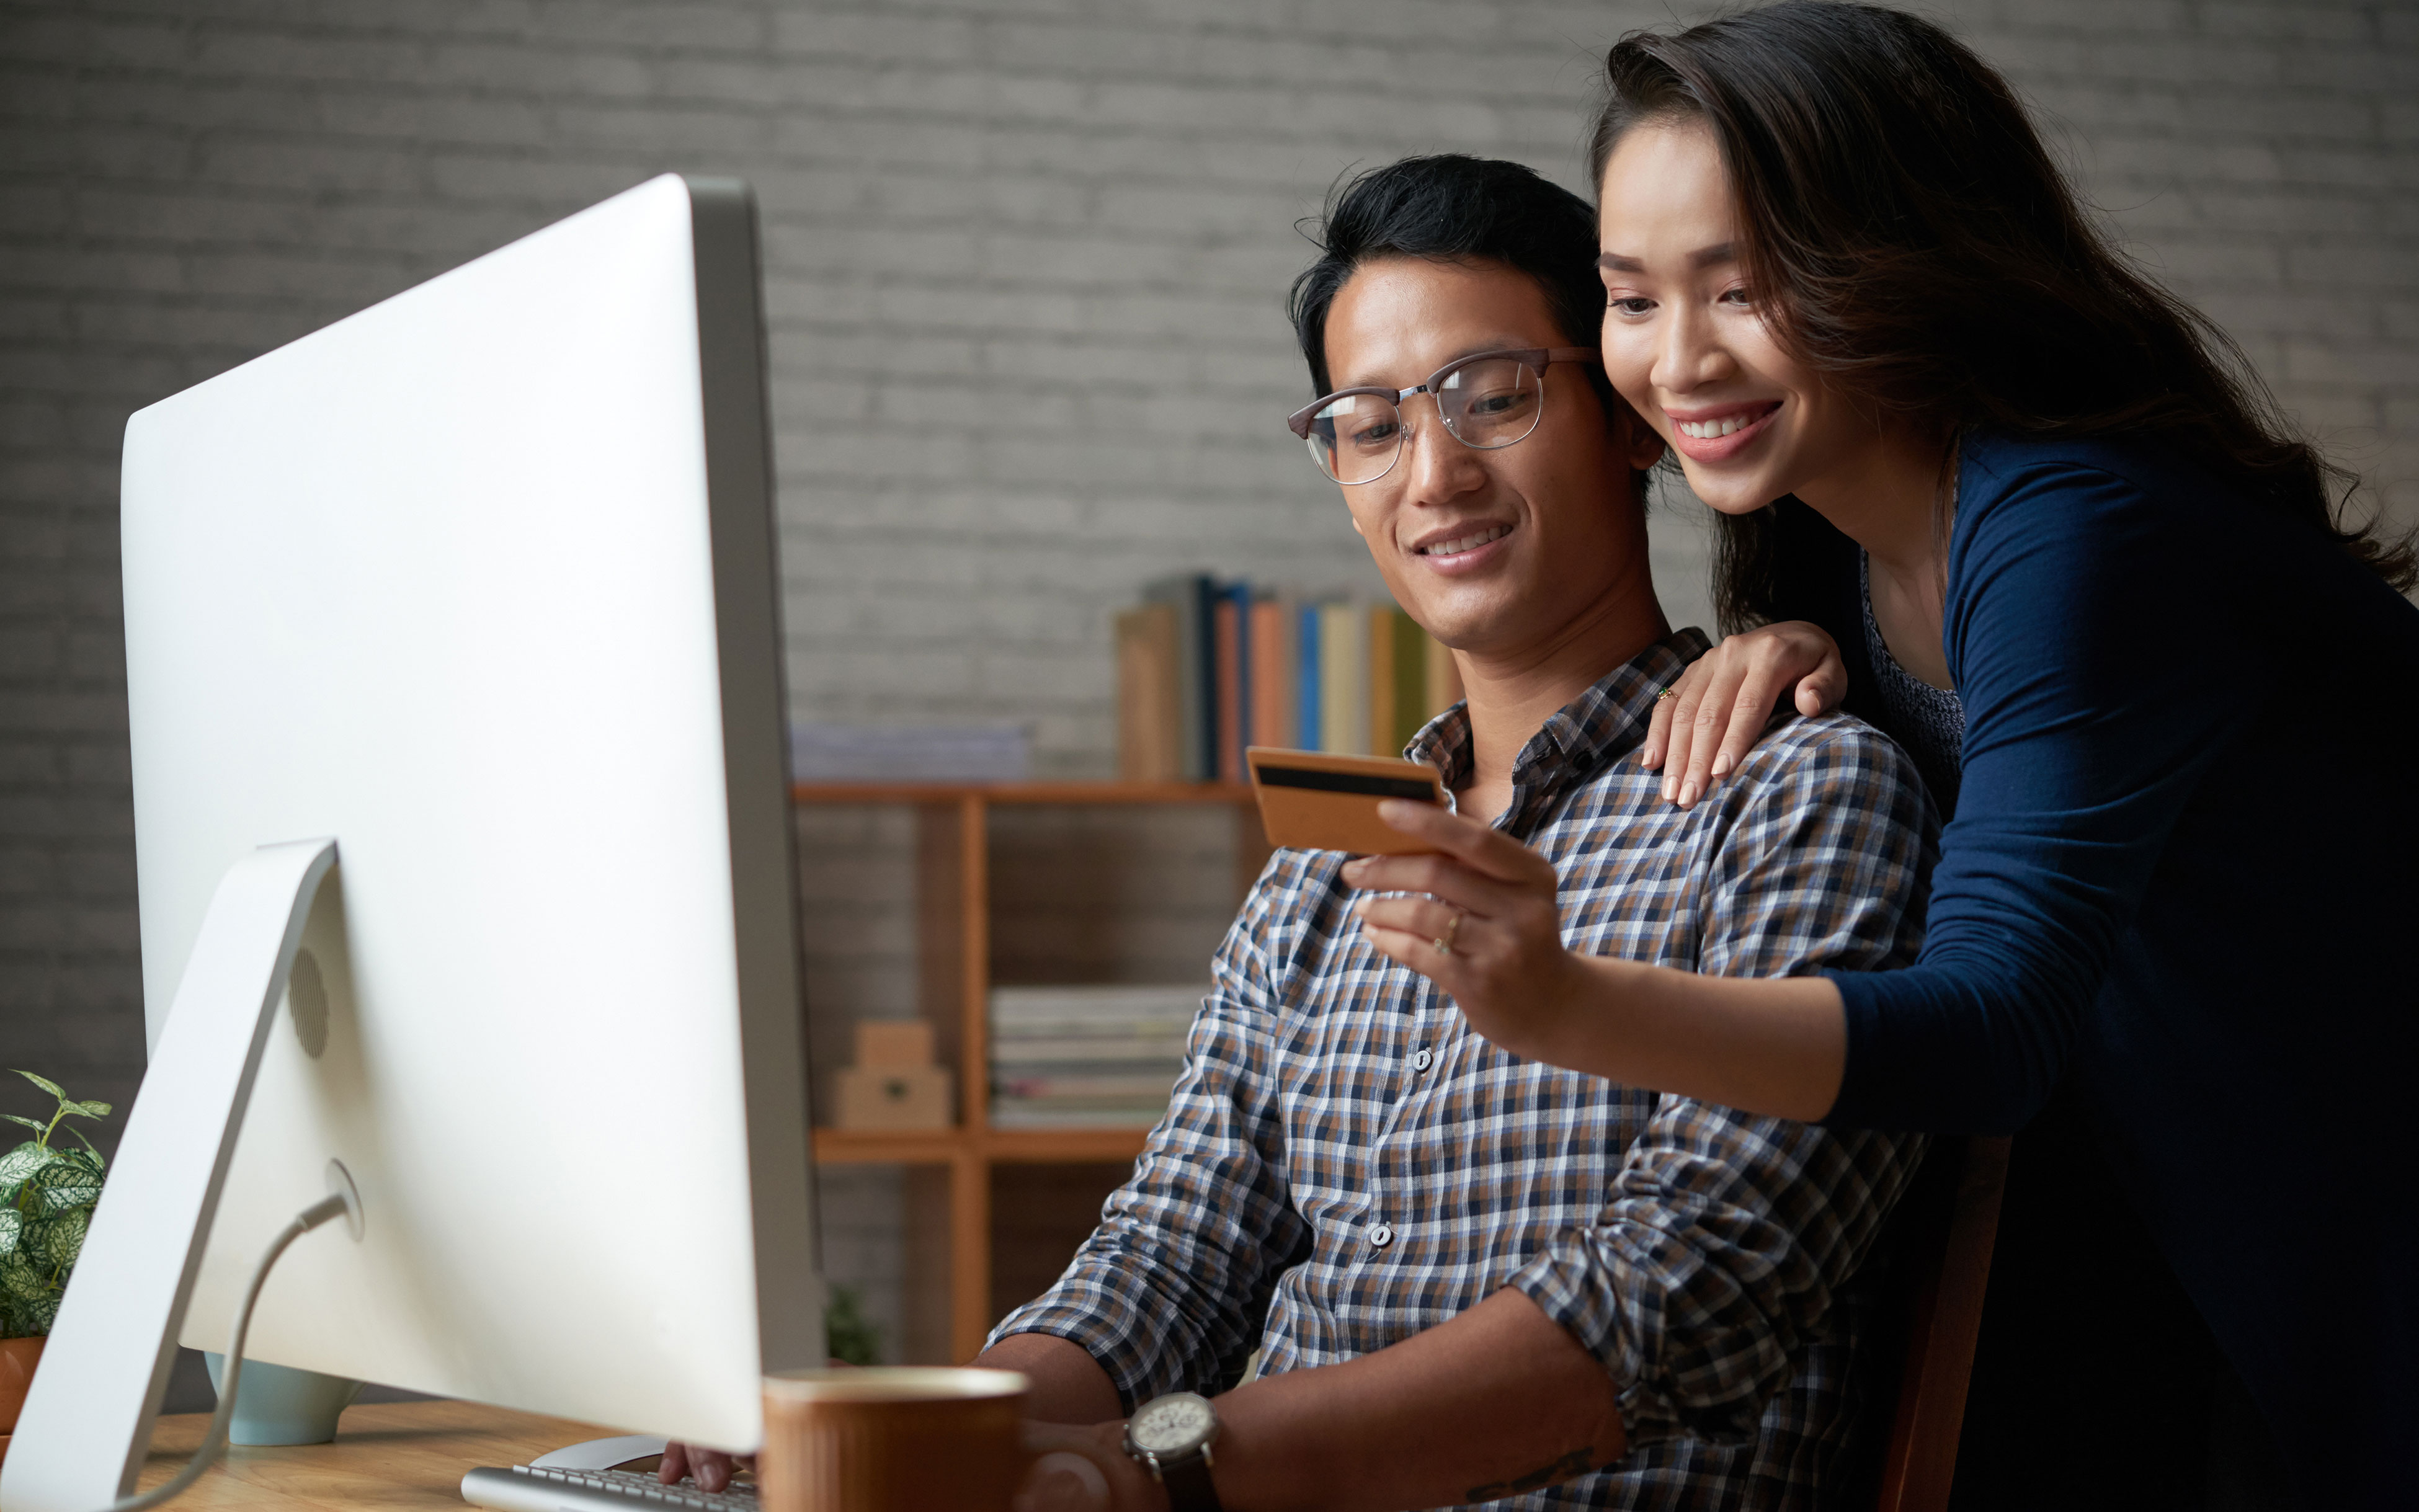 female leaning over male shoulder to give credit card numbers, both in front of computer